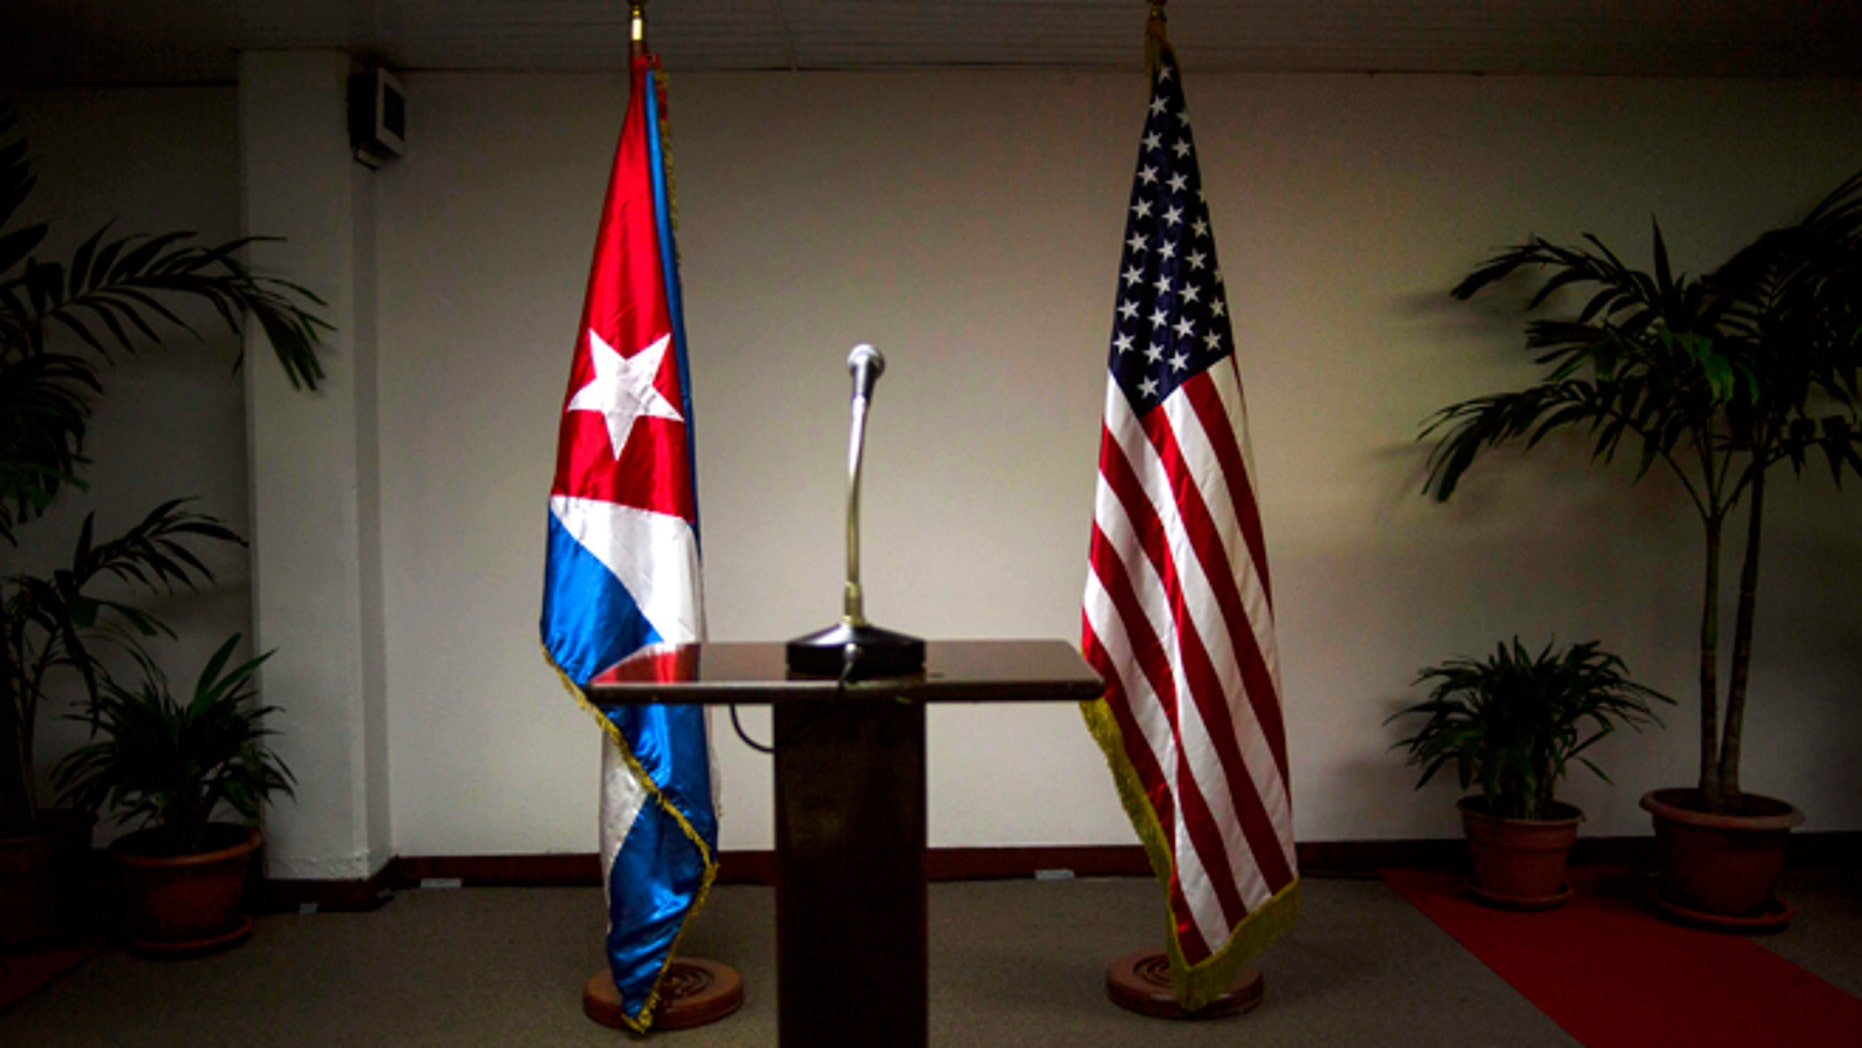 FILE - In this Jan. 22, 2015 file photo, Cuban and U.S. flags stand before the start of a press conference on the sidelines of talks between the two nations in Havana, Cuba. Members of the U.S. Democratic congressional delegation to Cuba said on Tuesday, Feb. 17, 2015 the next round of negotiations on restoring full diplomatic ties with Cuba will take place in Washington next week. (AP Photo/Ramon Espinosa, File)